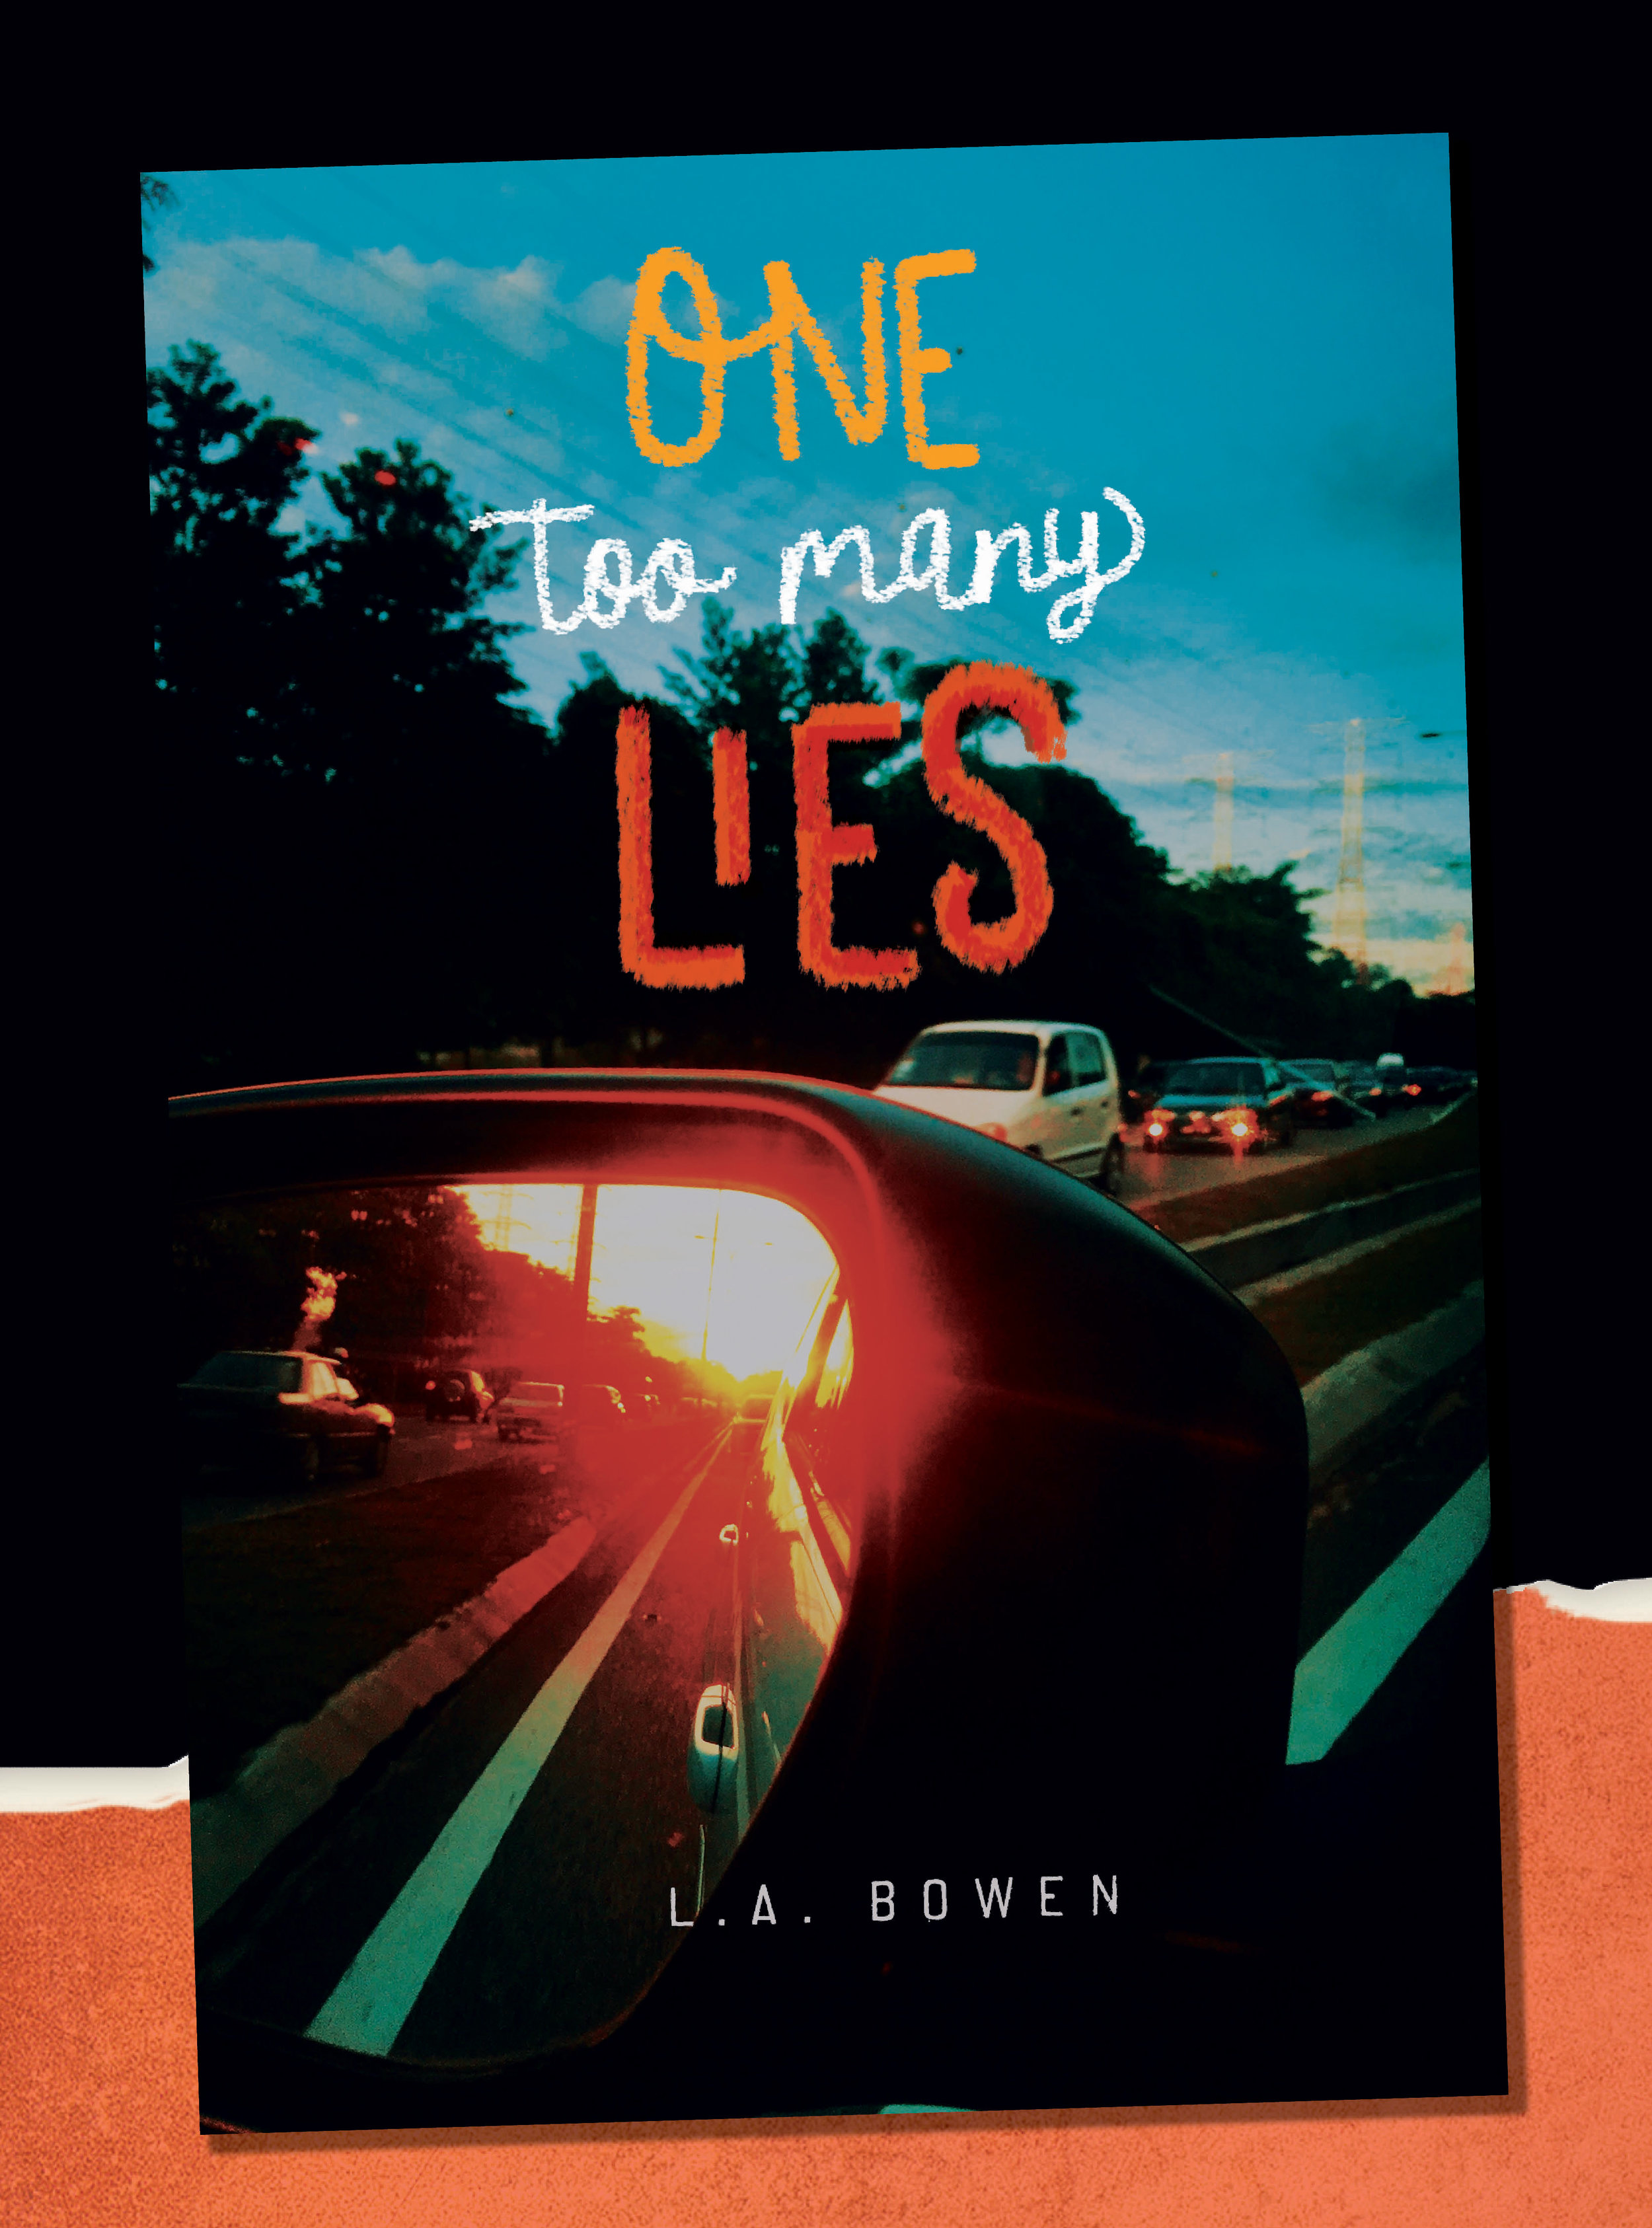 12.1.18 -  OTML  Release Date   One Too Many Lies  now available through    Amazon    and    West44   .